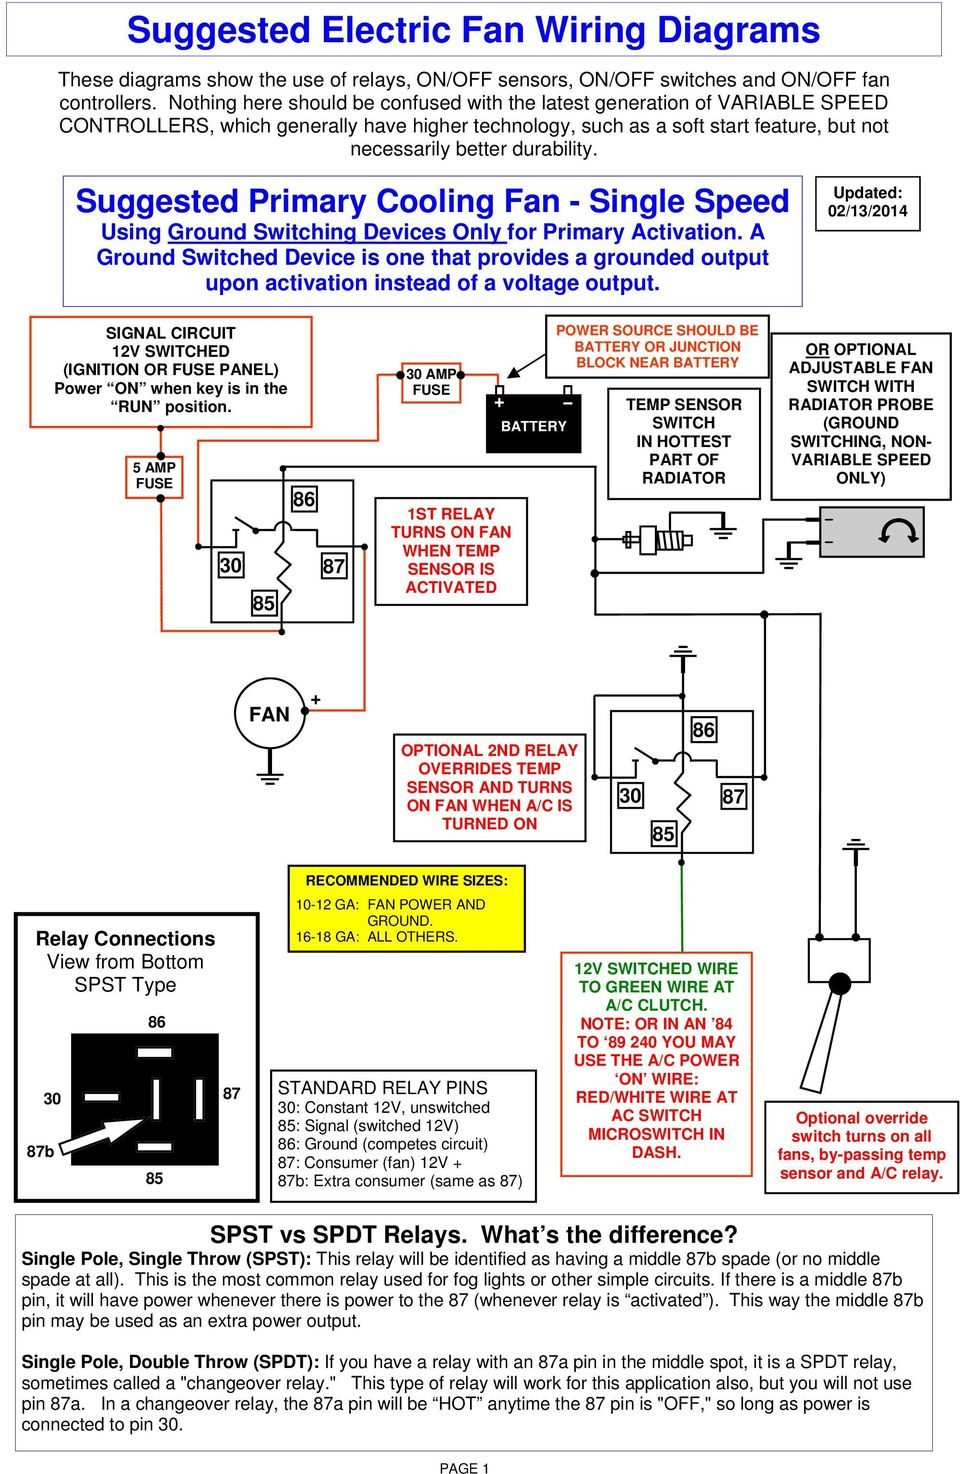 Suggested electric fan wiring diagrams pdf